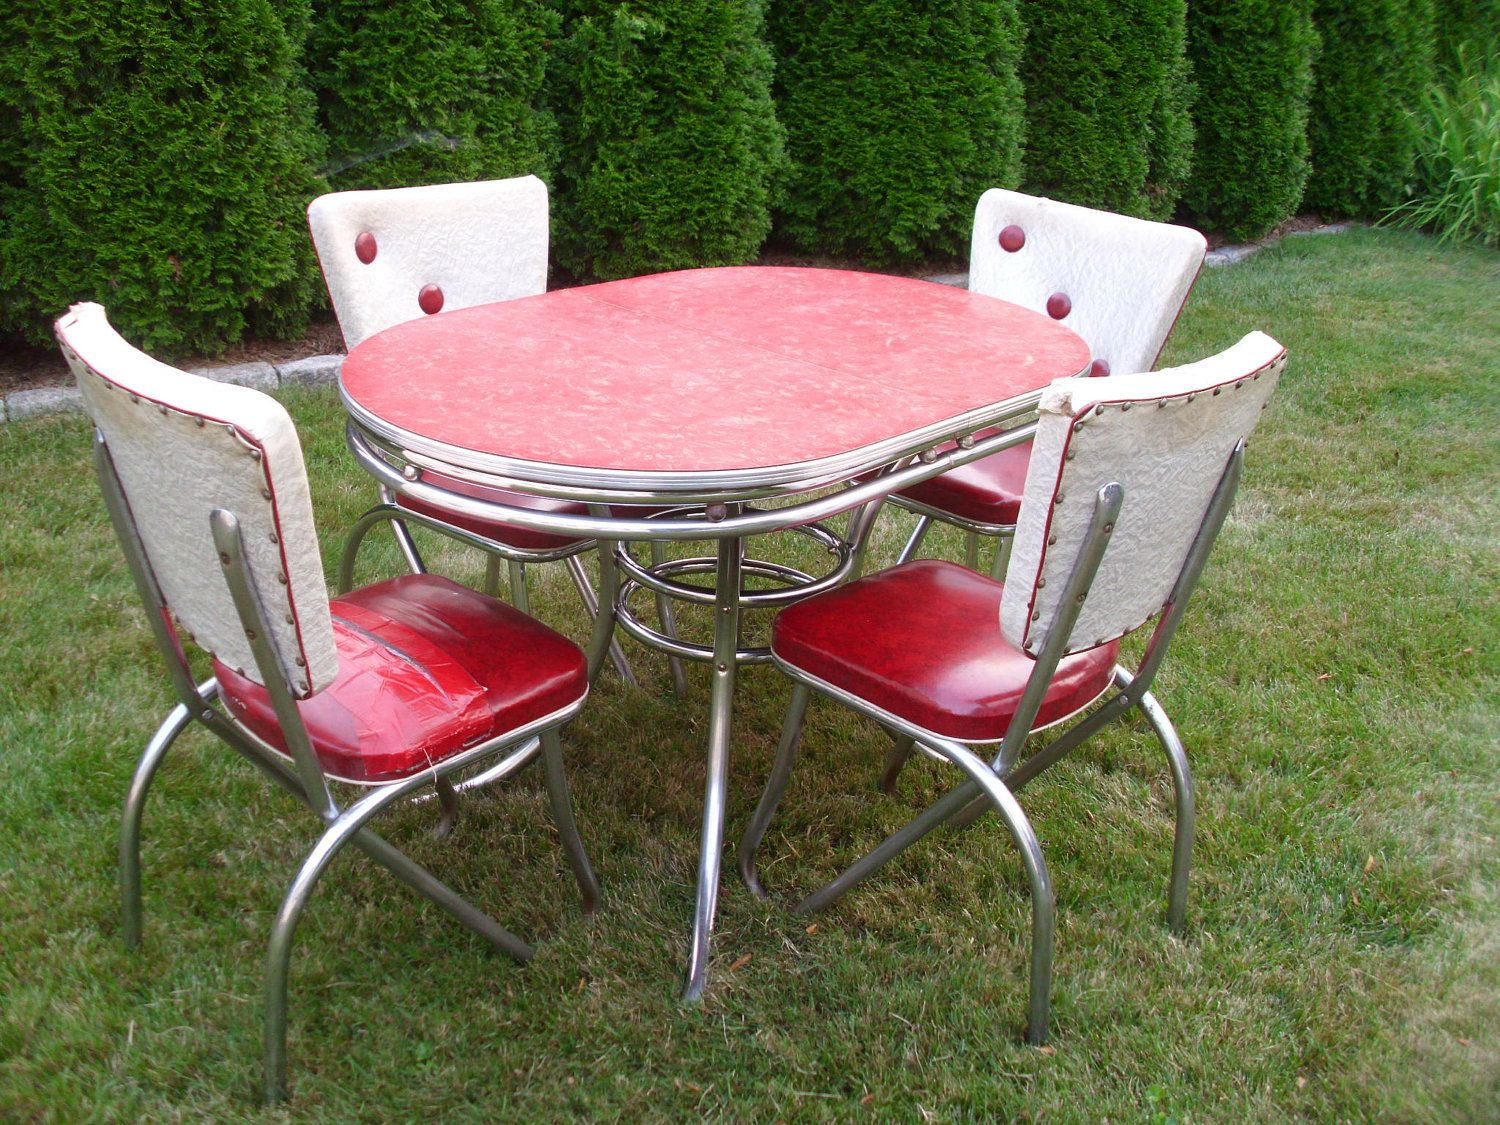 Chromcraft Furniture Kitchen Chair With Wheels Vintage 1950s Kitchen Table Chairs Table And Chairs Buttons